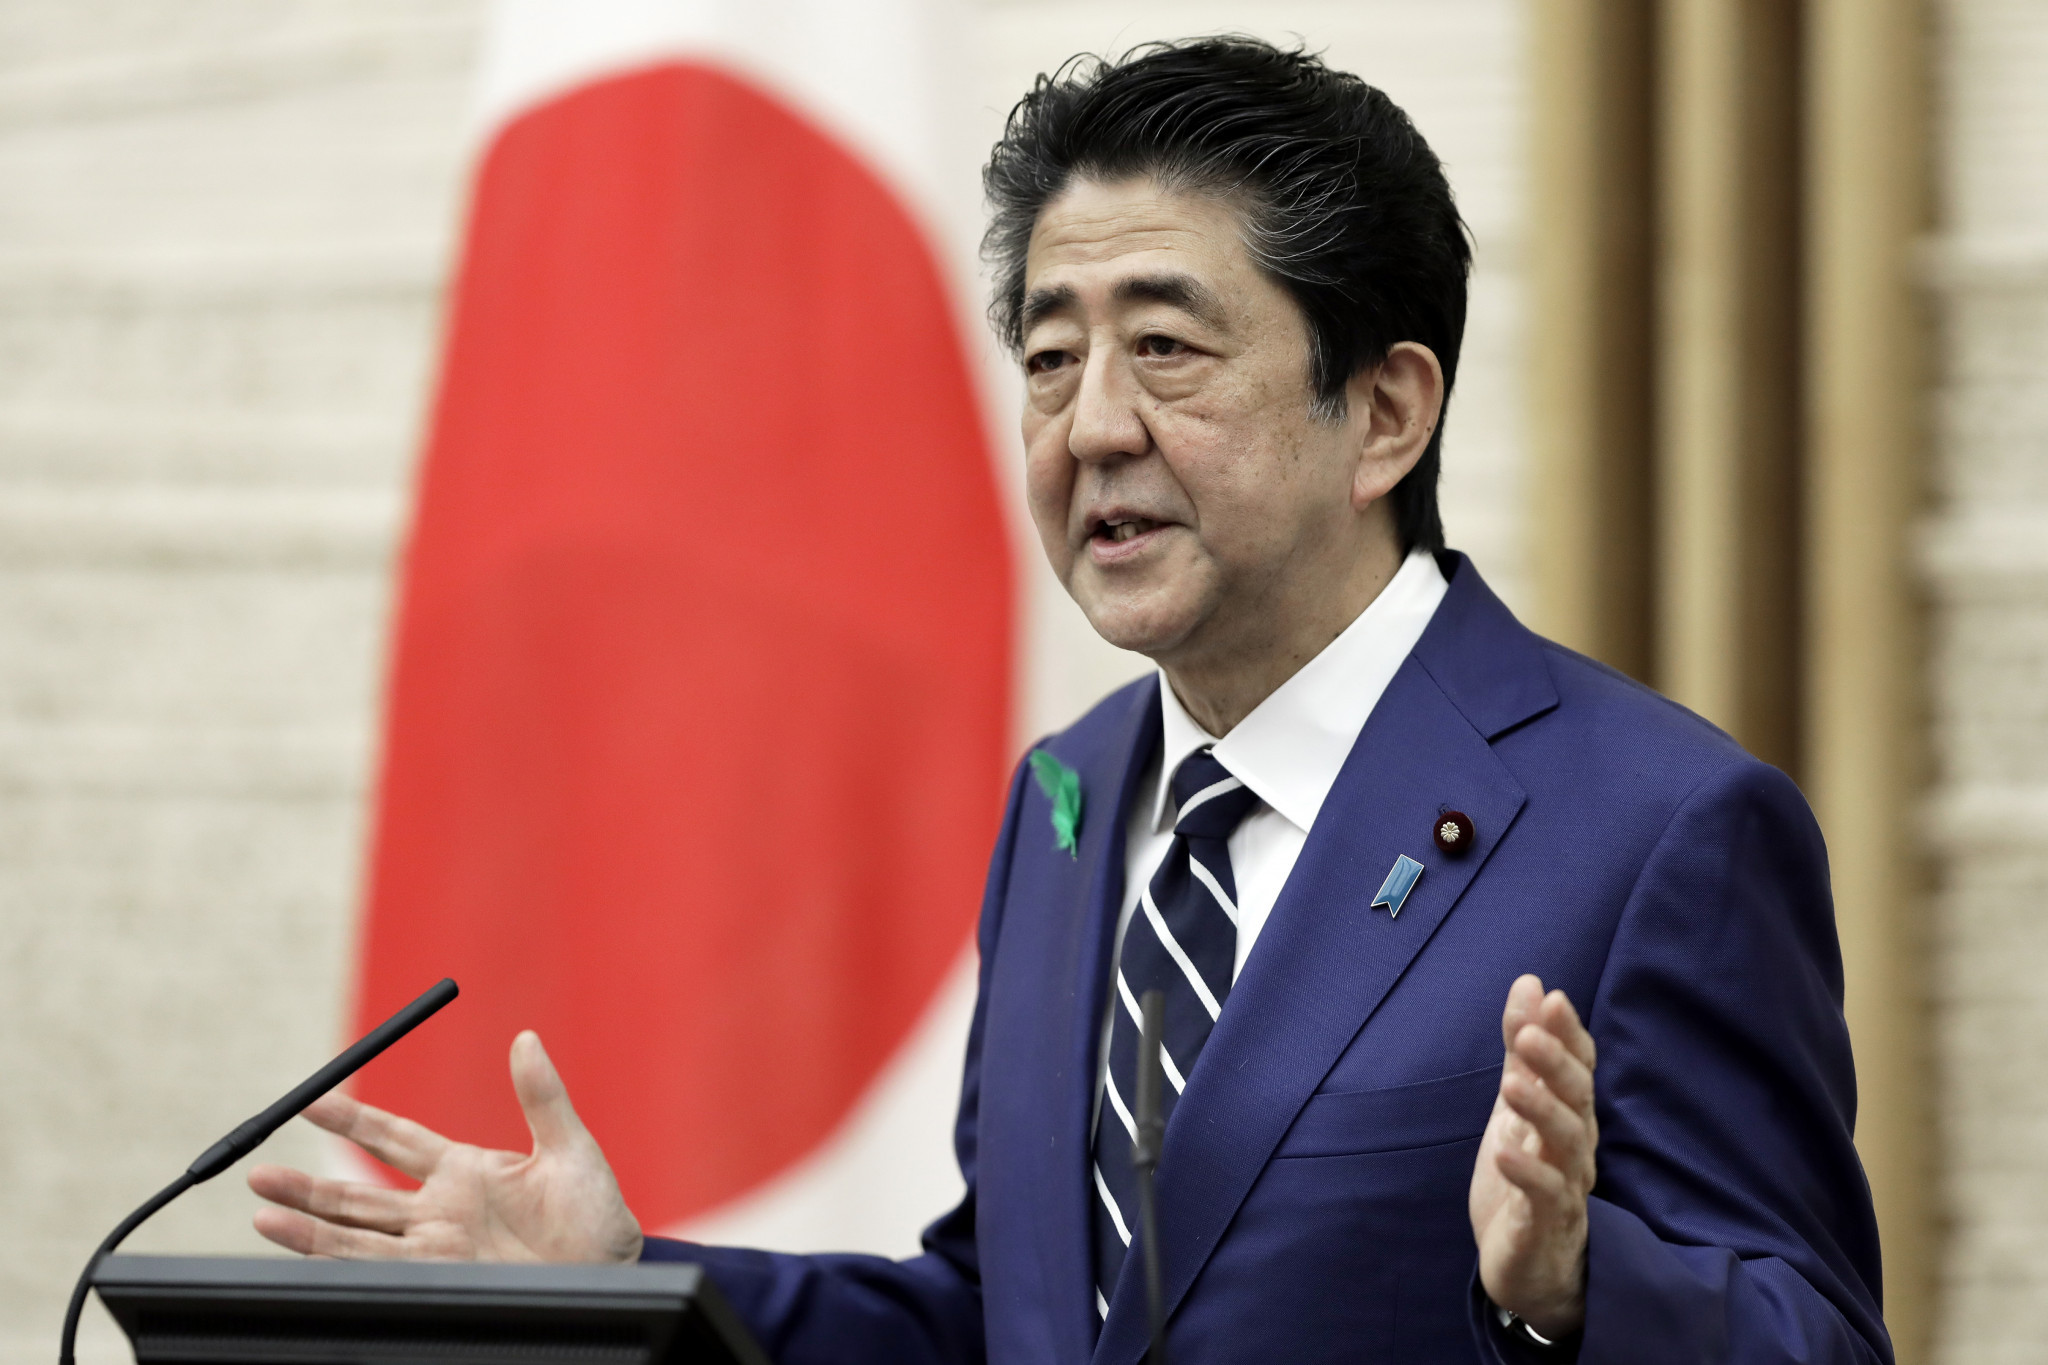 Japanese Prime Minister Abe considering extension of state of emergency